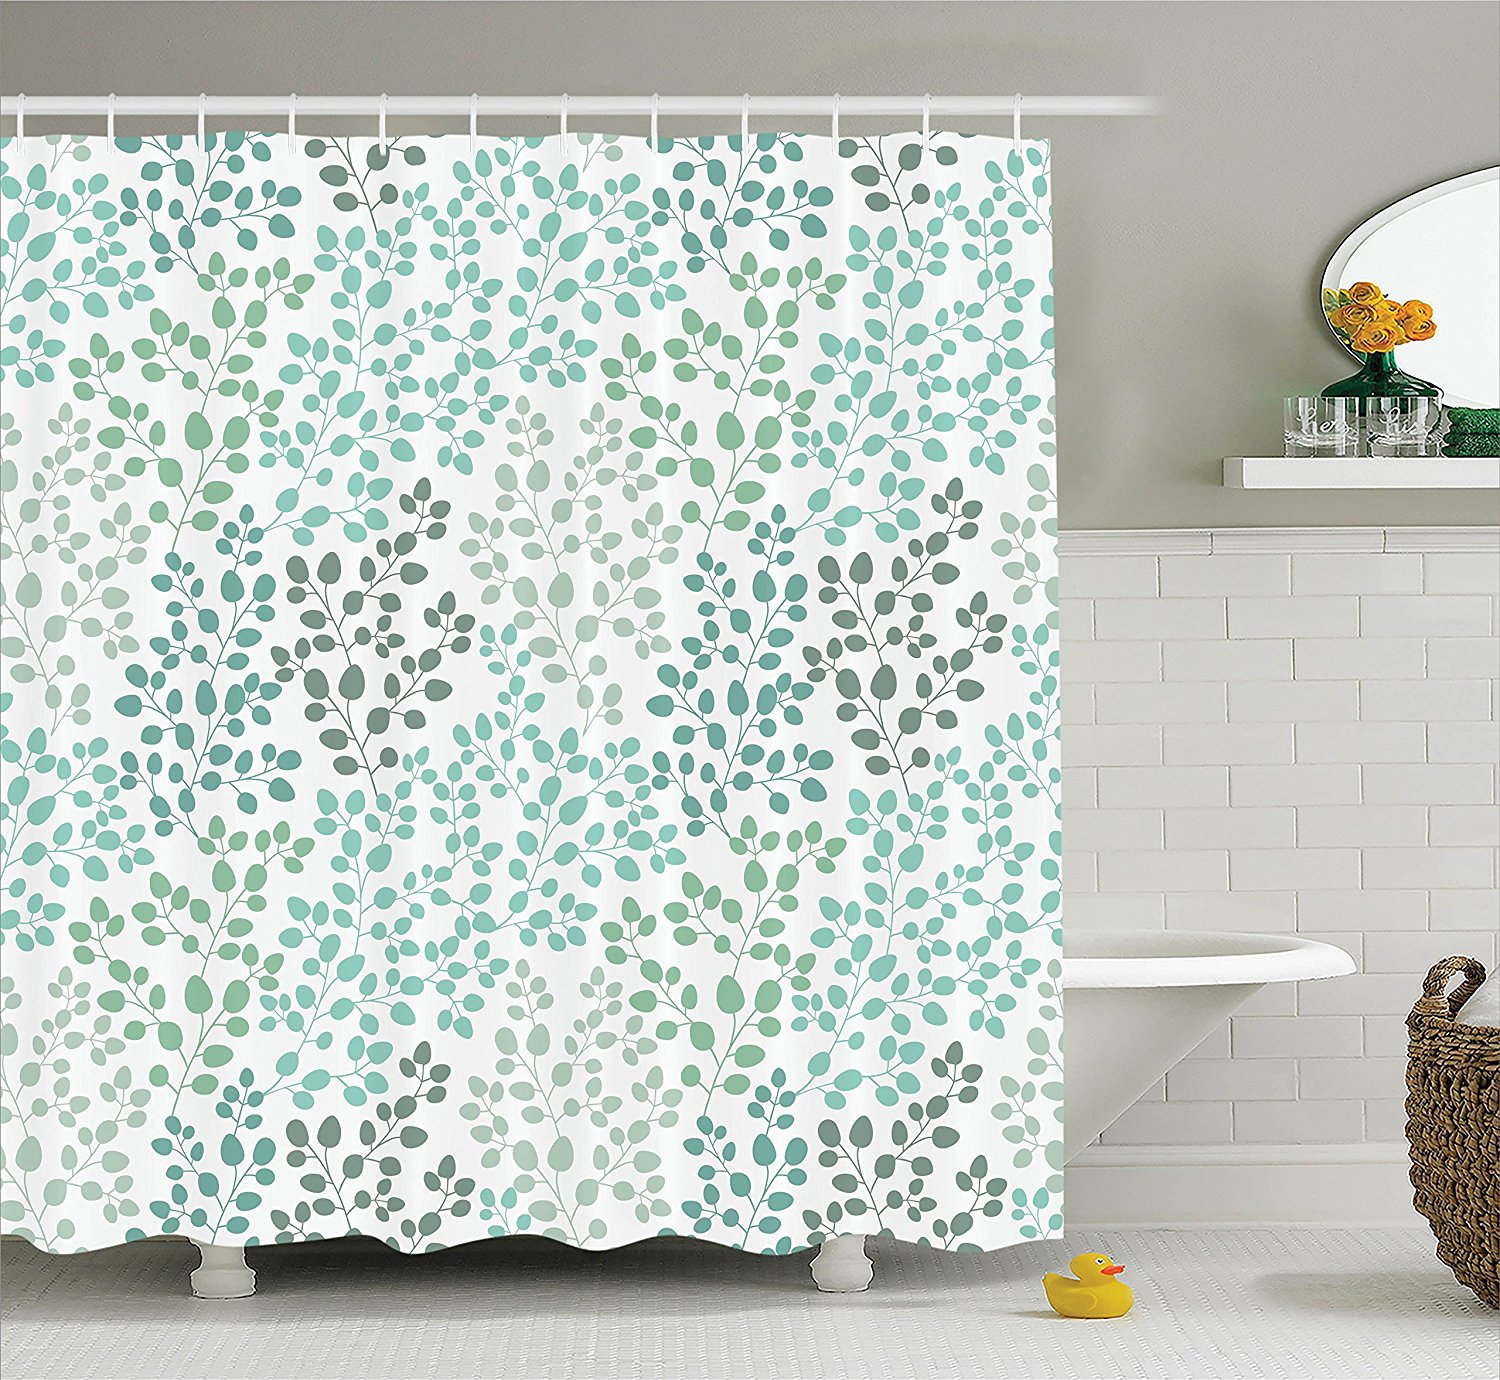 Us 16 19 10 Off Memory Home Nature Shower Curtain Green Decor Pattern Decorative Fabric Bathroom With Hooks Gray Teal Green Shower Curtain In Shower